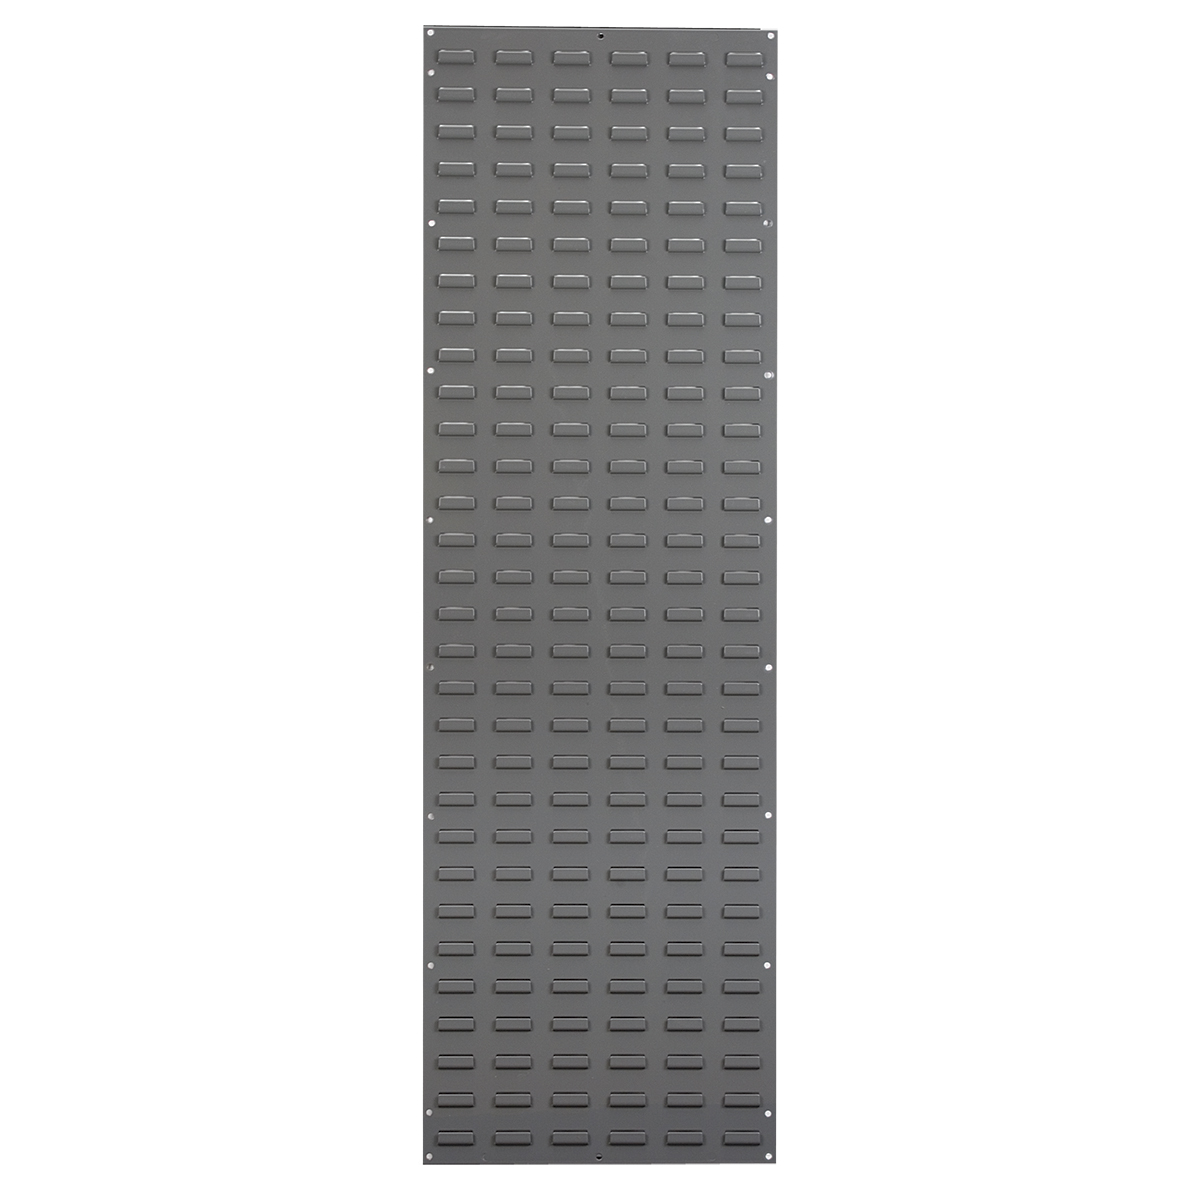 Louvered Wall Panel, 18 x 61, Gray (30118).  This item sold in carton quantities of 1.